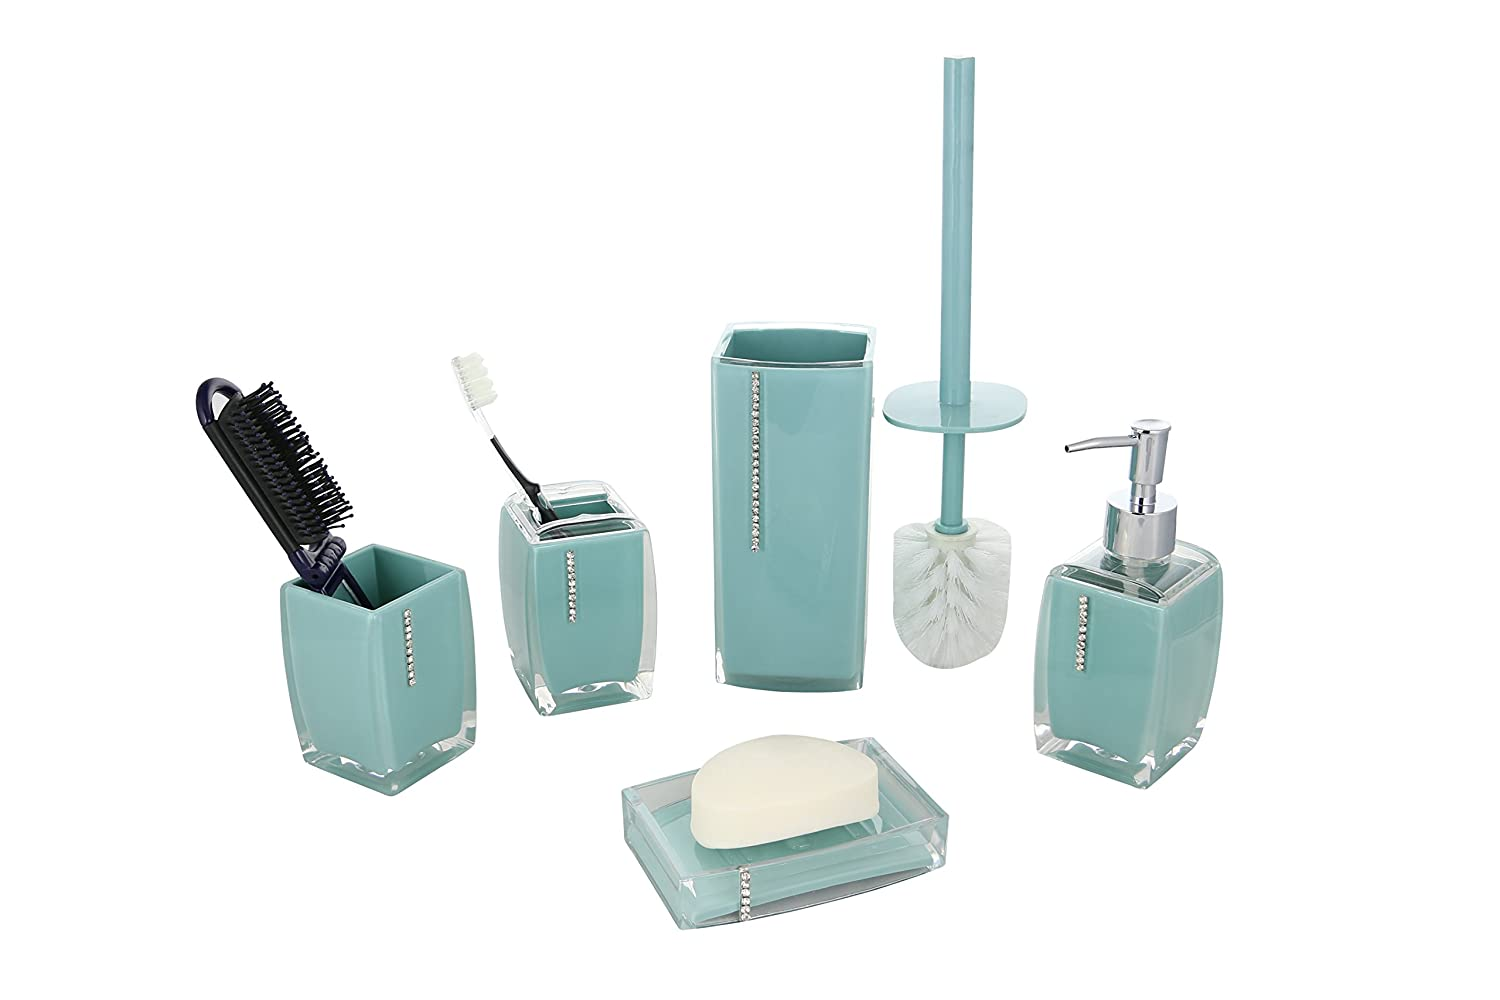 Amazon.com: 6-Piece Bathroom Set Turquoise With Crystals, Includes ...